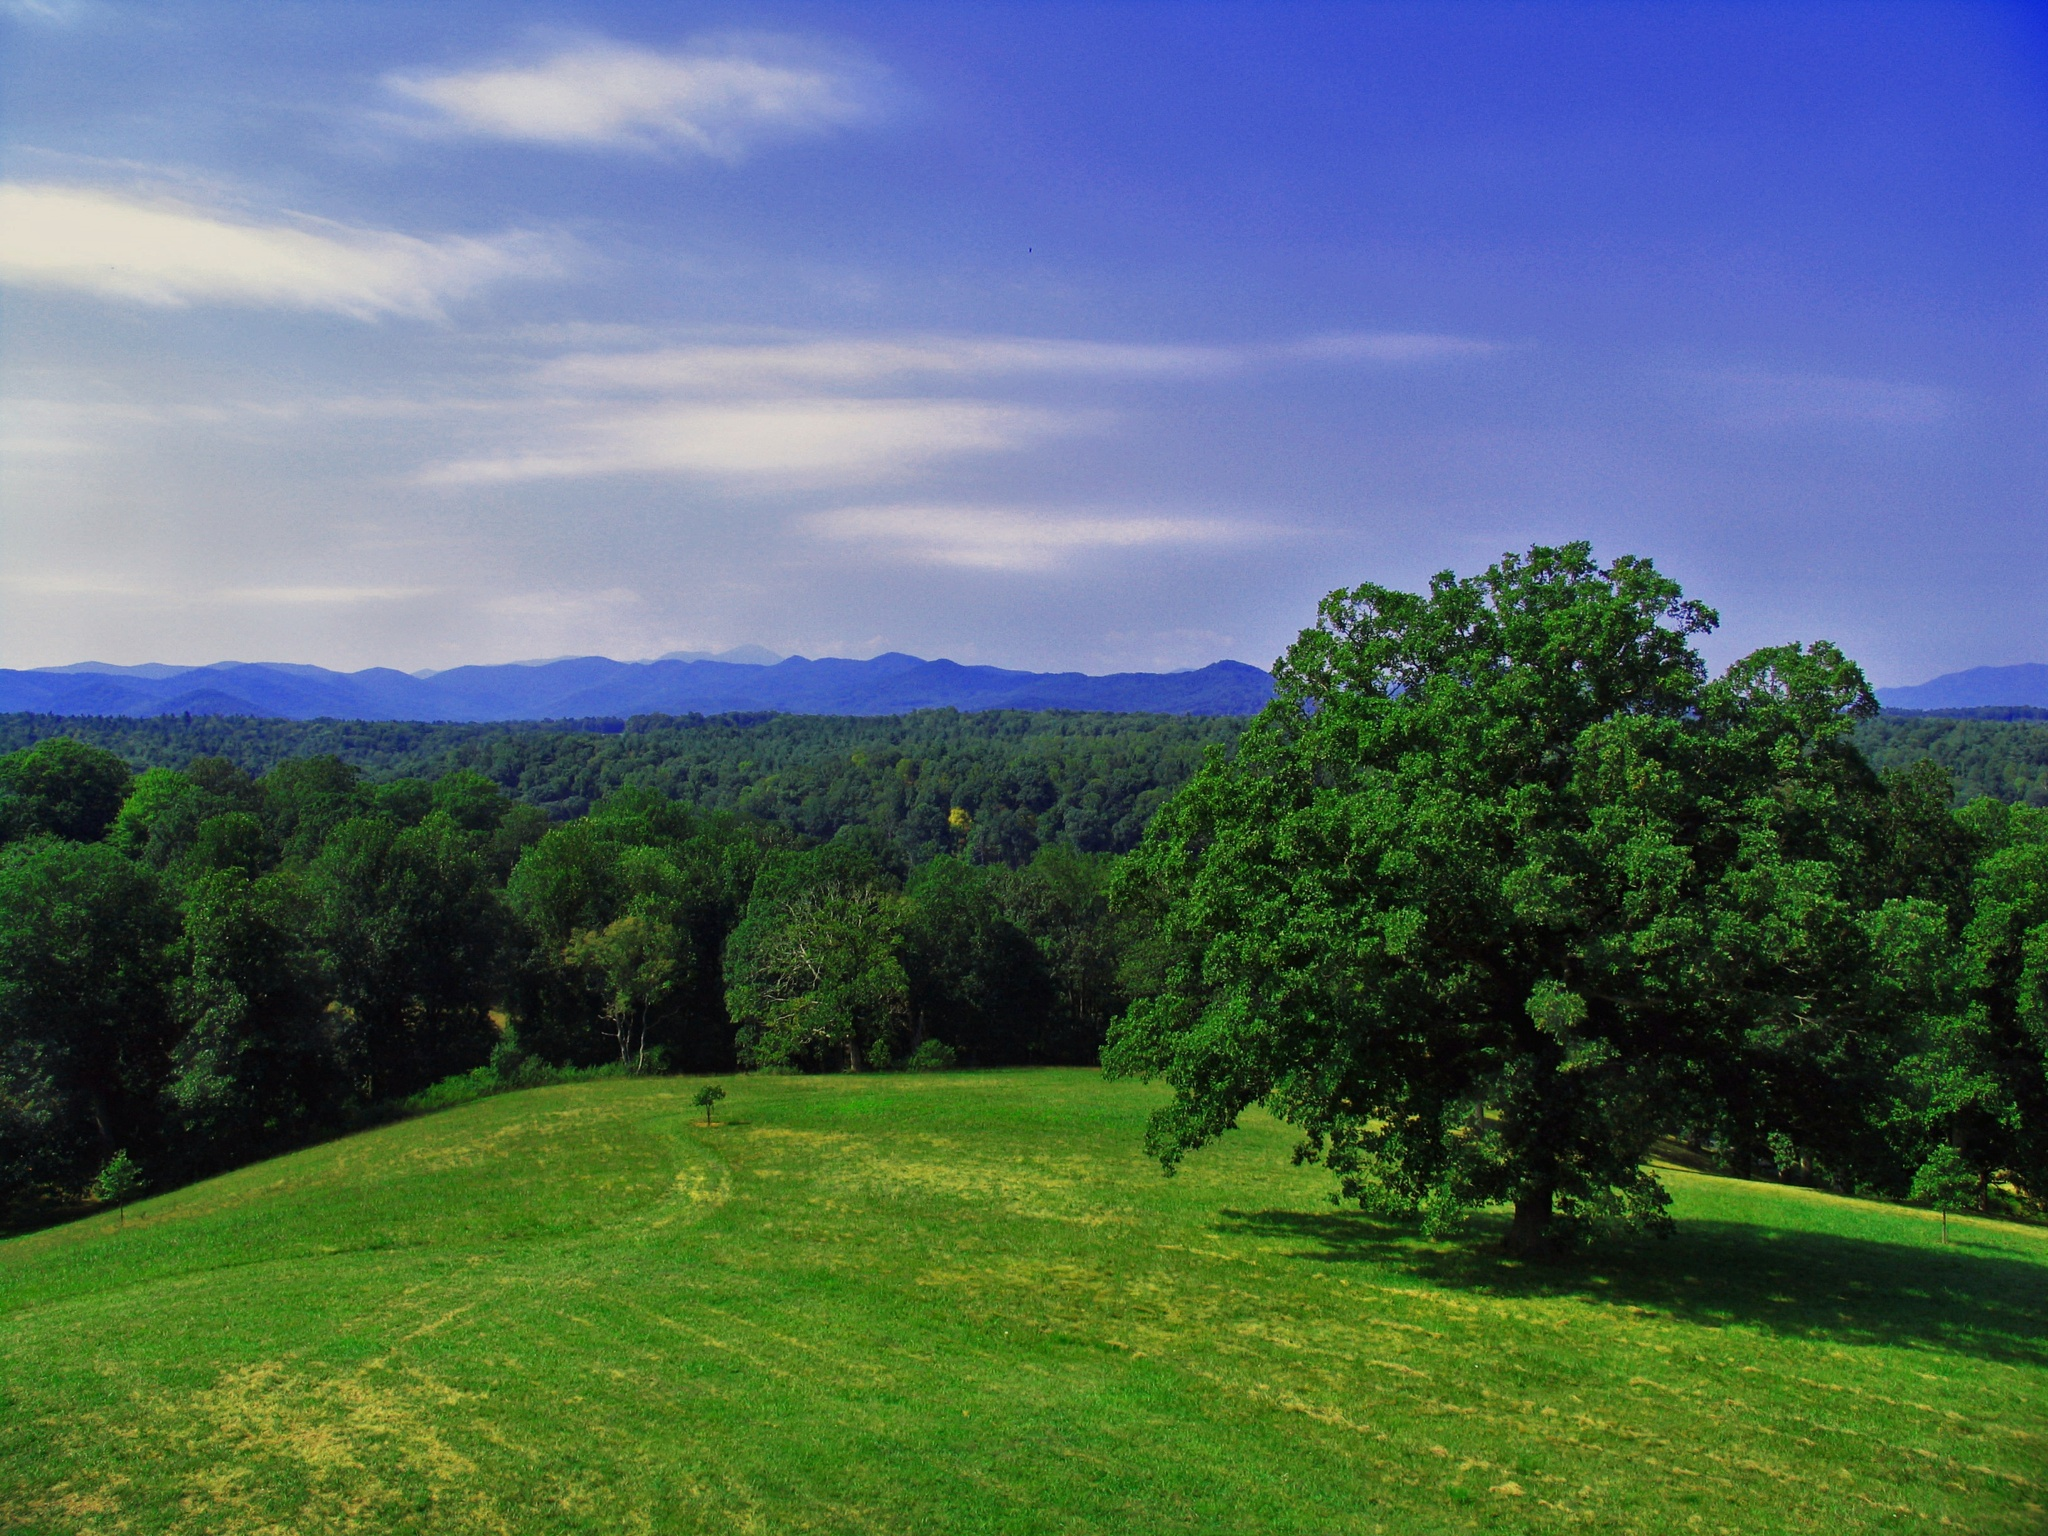 View from Biltmore by monarch